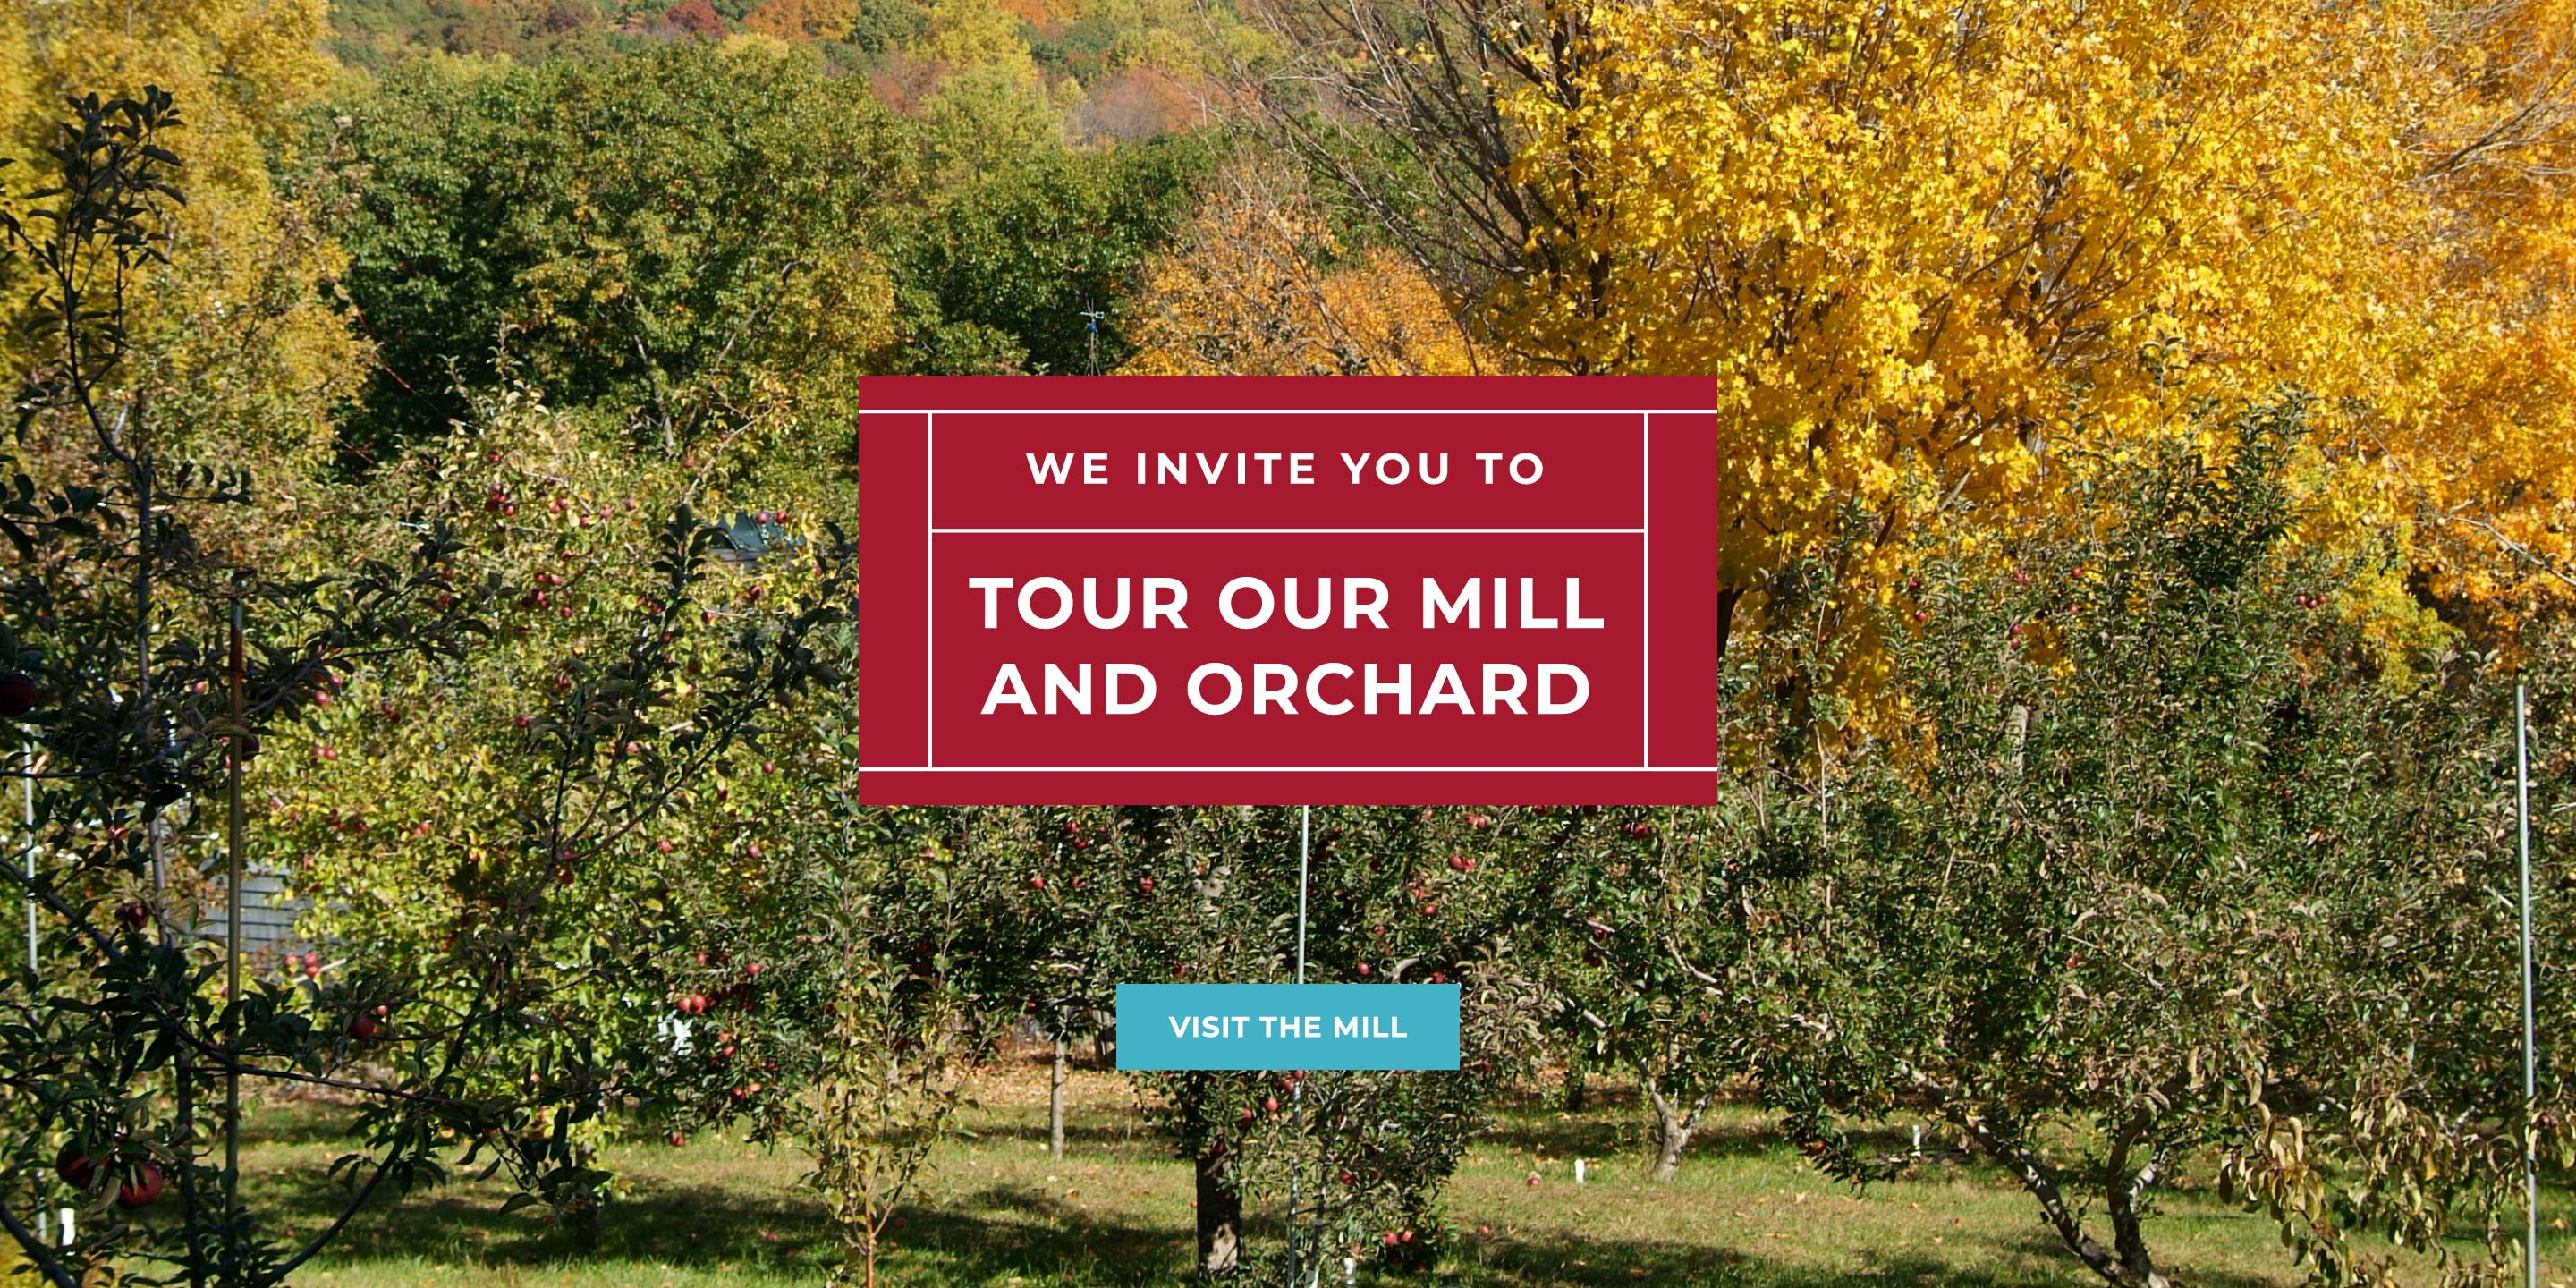 We invite you to Tour our Mill and Orchard